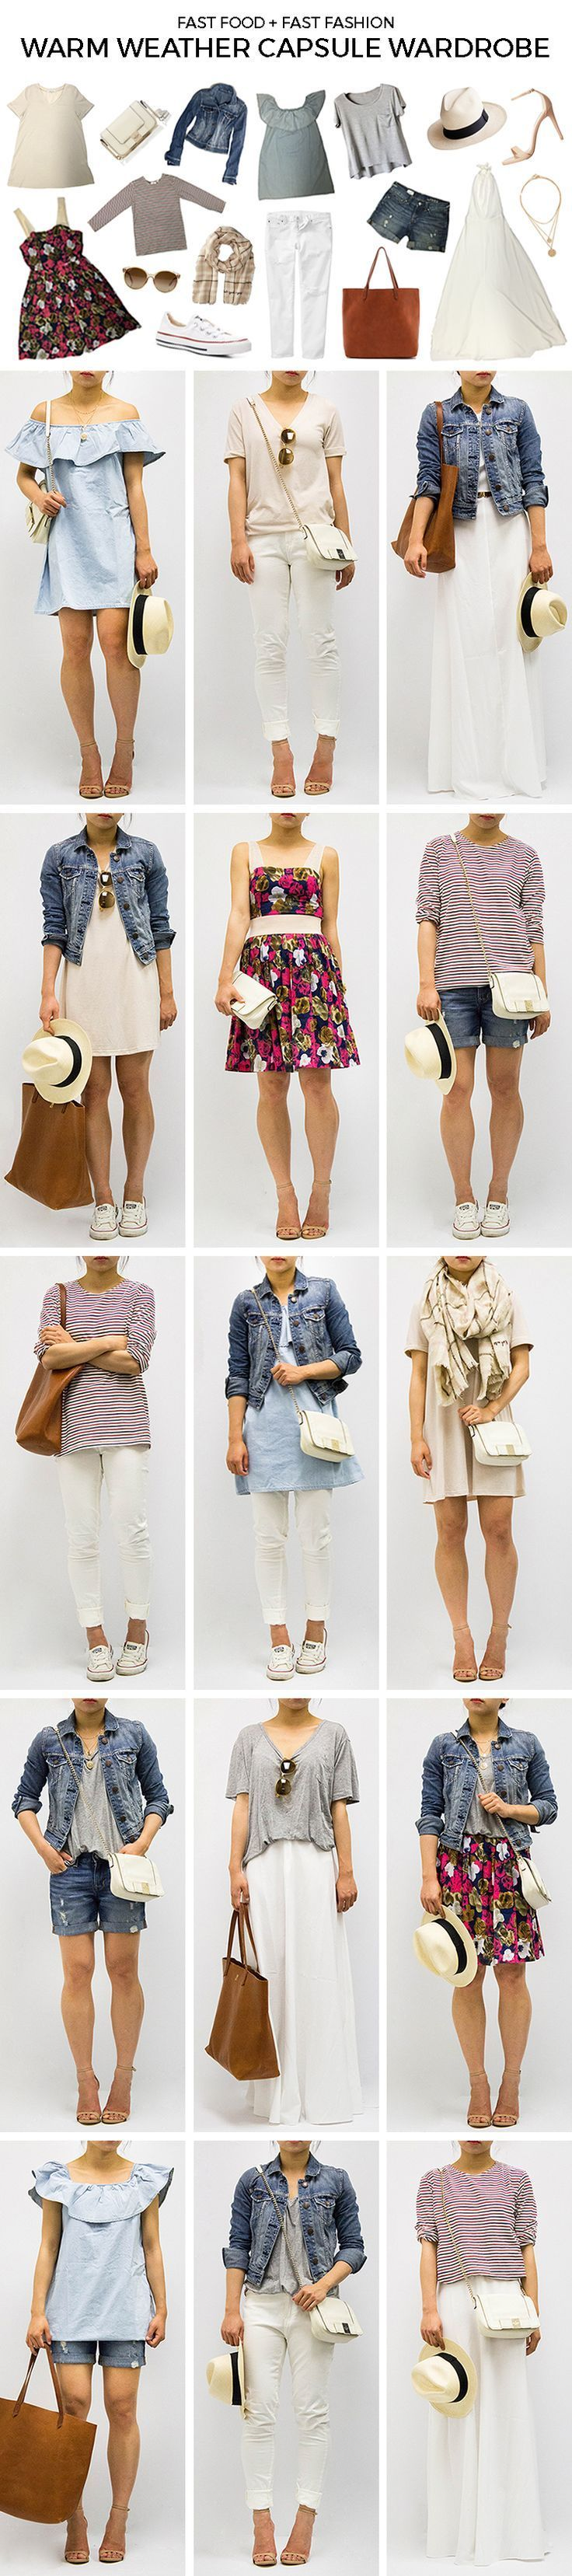 The Ultimate Capsule Wardrobe: Casual Infusion I Here's my travel wardrobe for 10 days in Japan: http://www.sewinlove.com.au/2013/03/28/10-days-japan-travel-capsule-wardrobe-%E6%97%A5%E6%9C%AC%E6%97%8